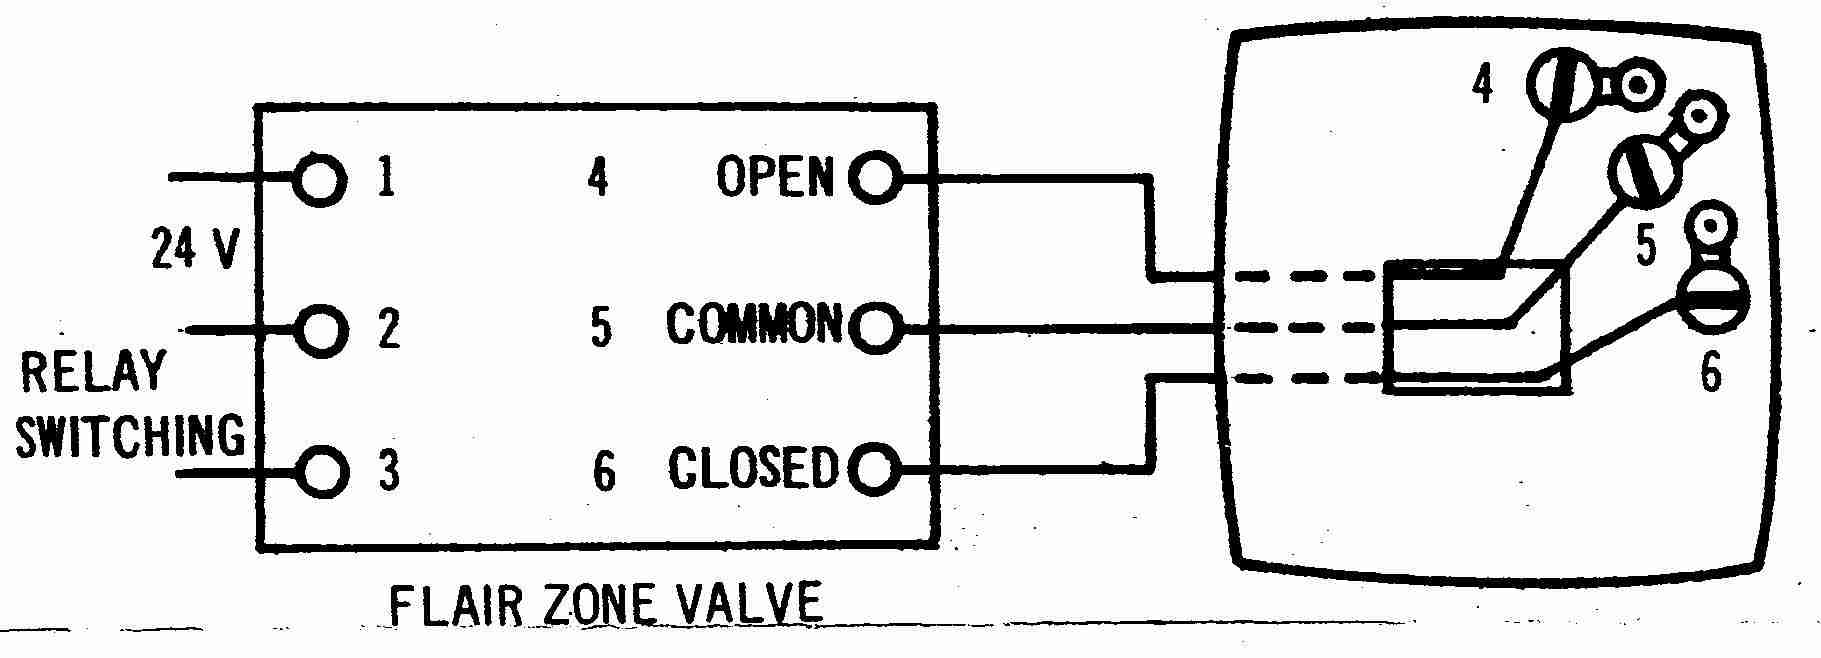 room thermostat wiring diagrams for hvac systems Honeywell RTH2300 Thermostat Wiring Diagram flair 3 wire thermostat wiring controlling a zone valve